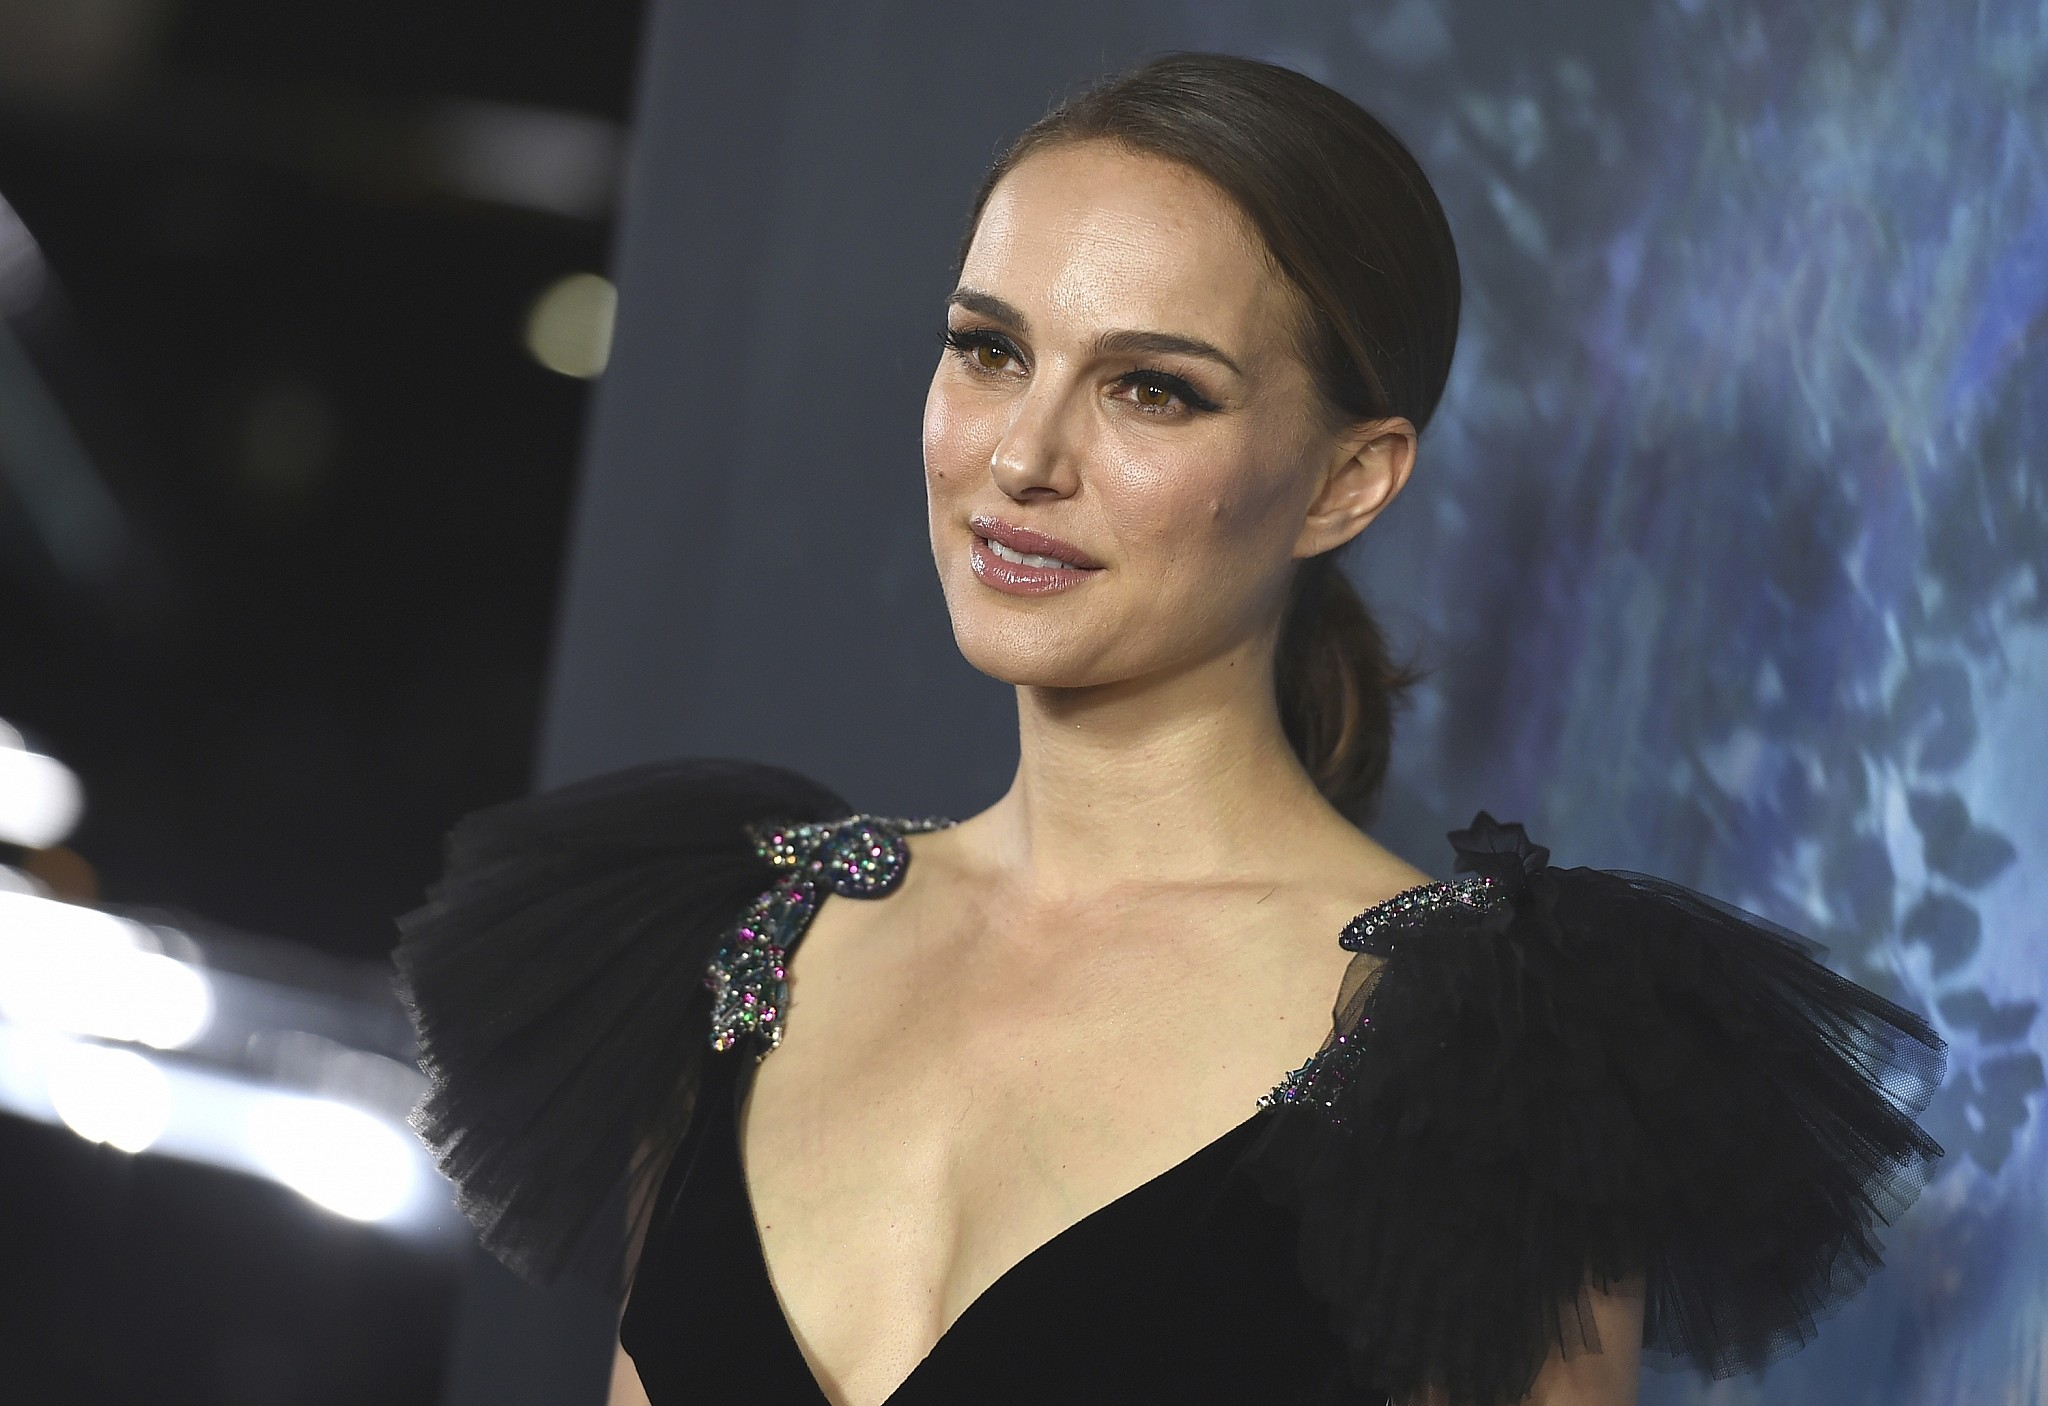 Natalie Portman Shades Former Harvard Friend Jared Kushner for 'Becoming a Supervillain'